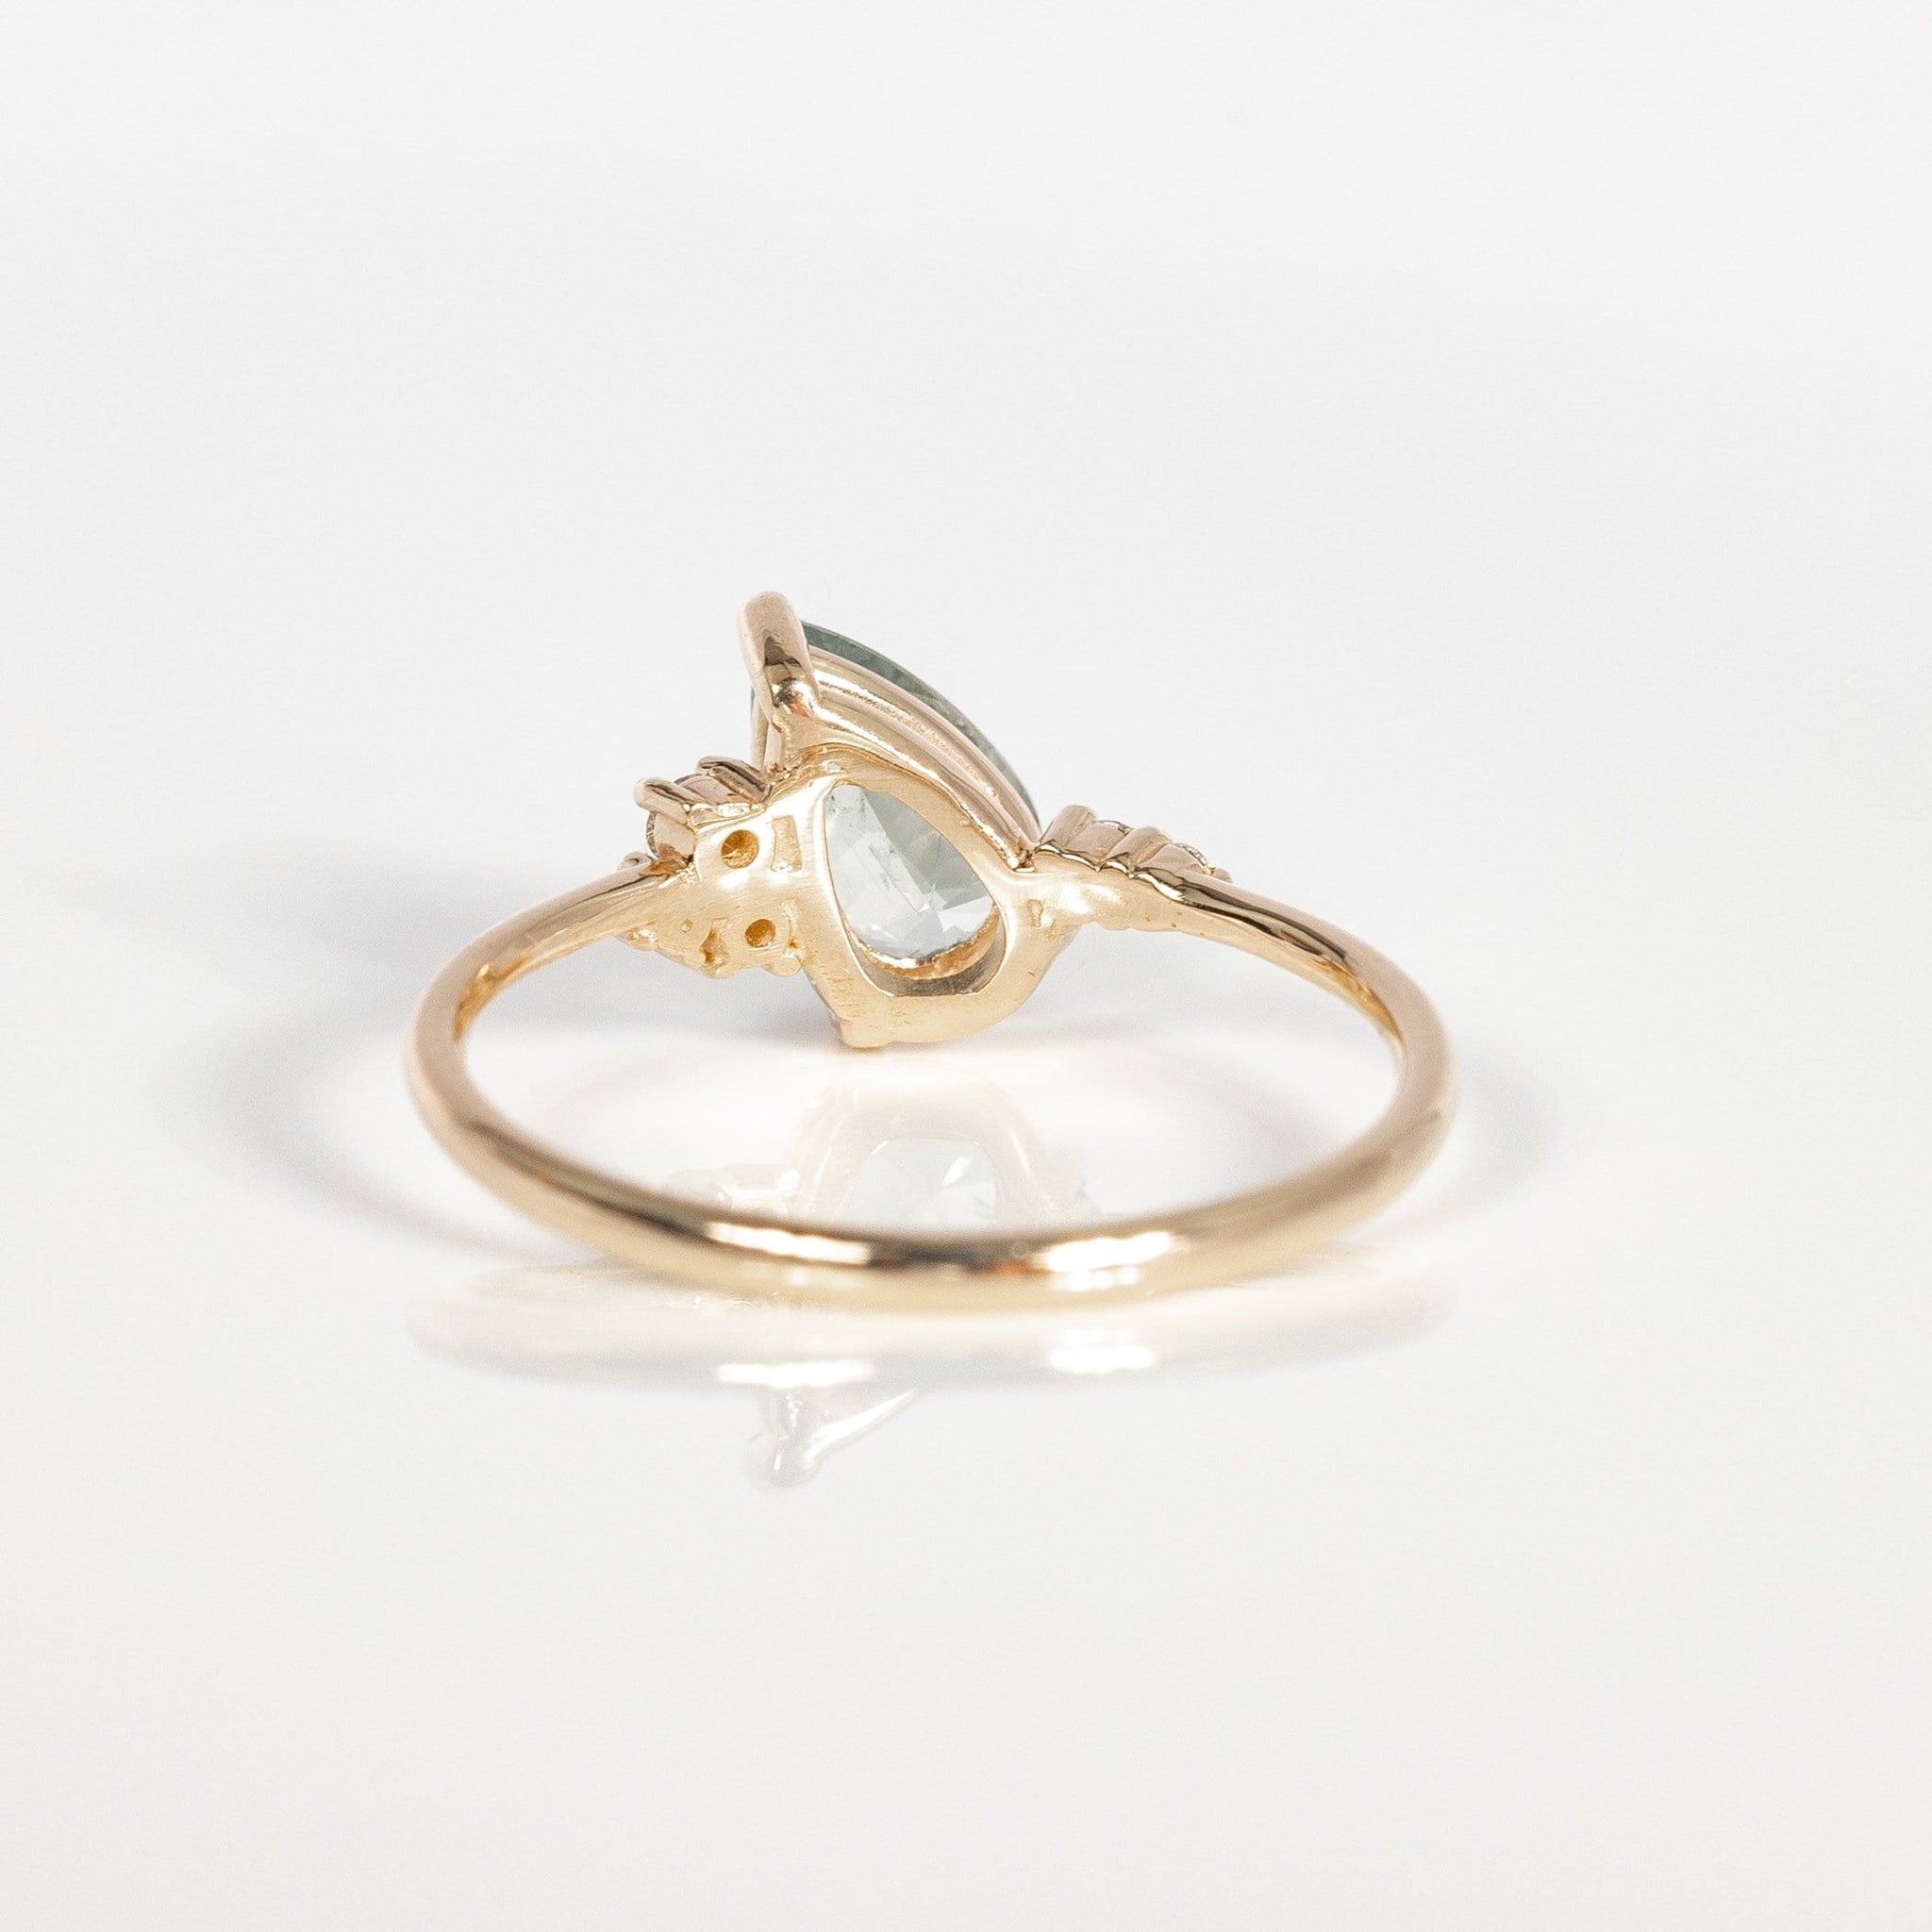 One of a Kind Bemusement Reverie Ring - launched: sept 11, sold: sept 25